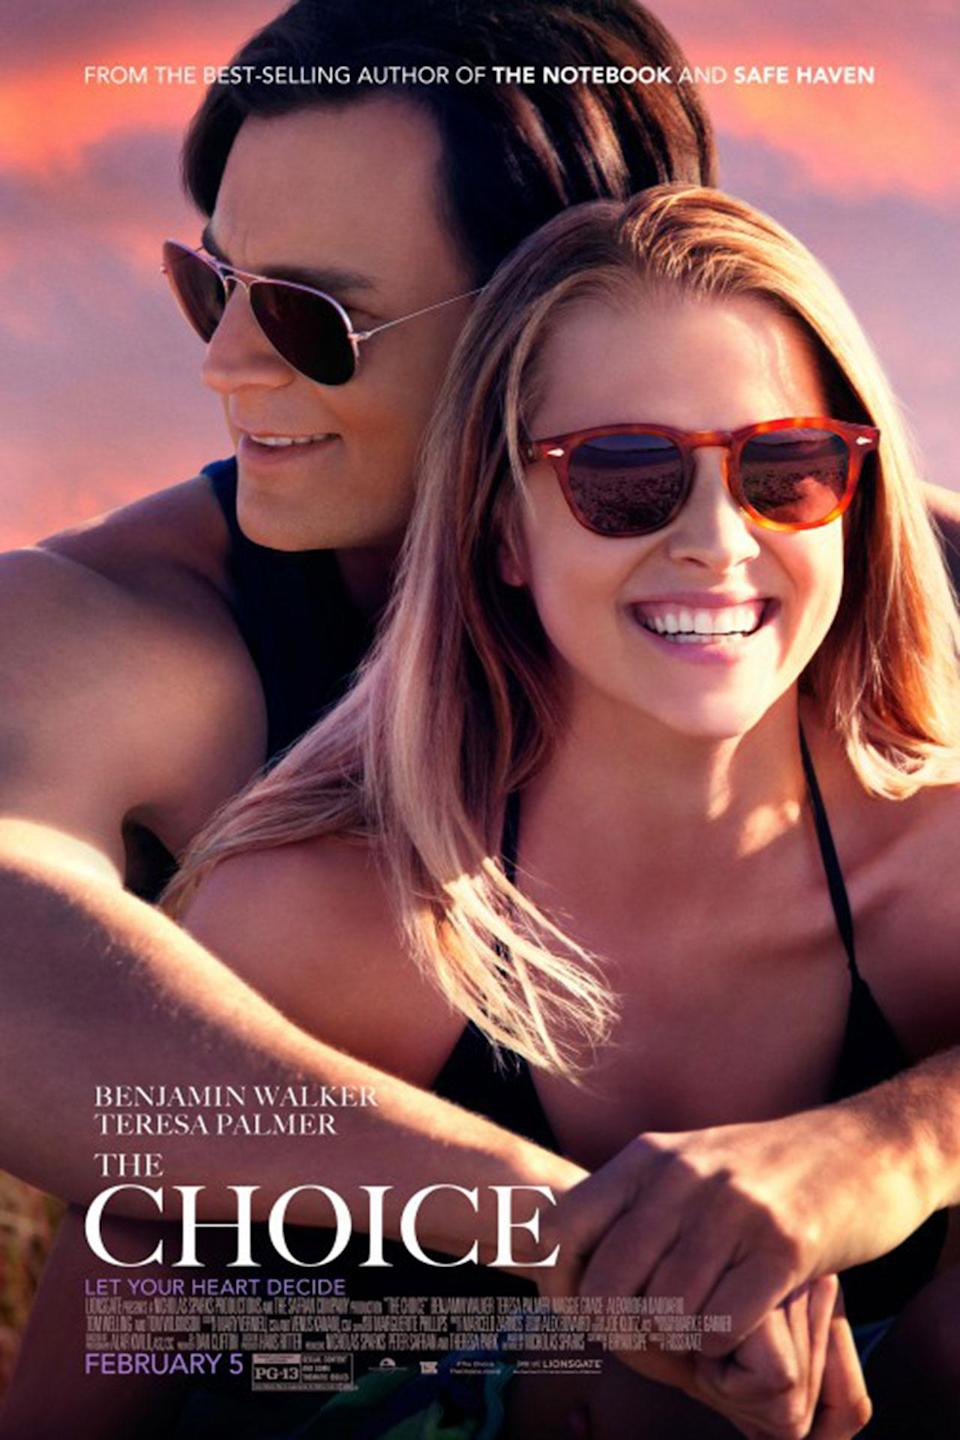 """<p>Entertainment Weekly called this Nicholas Sparks adaptation a """"predictable, recycled mess"""", and you could say the same about the poster which looks like the two actors weren't even in the same room when their photos were taken and composited together. (Credit: Lionsgate) </p>"""